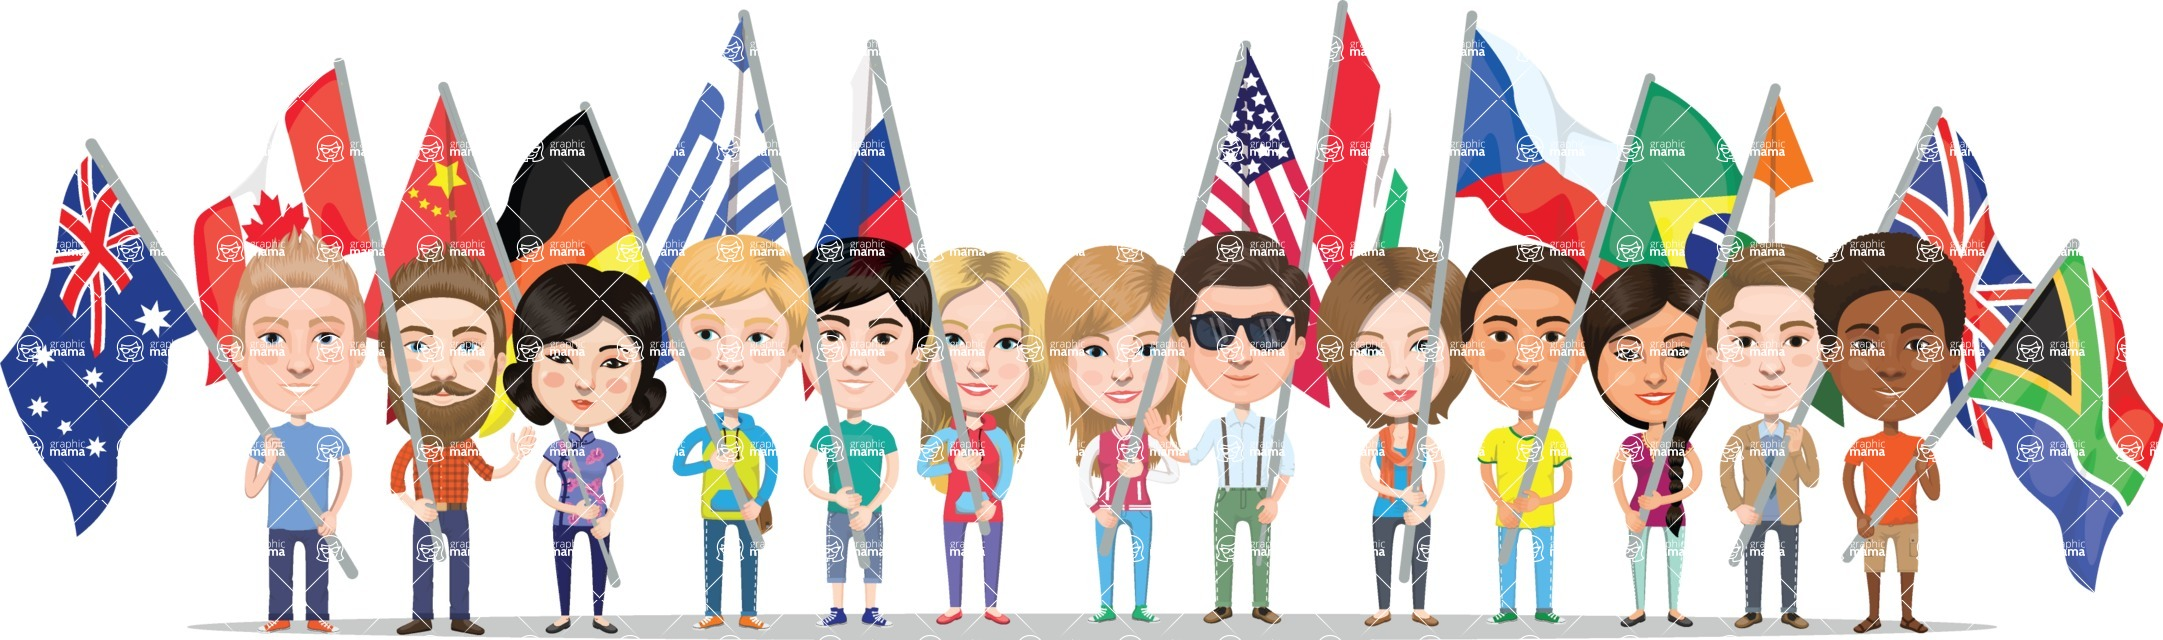 Nationalities Vectors - Mega Bundle - National flags and people